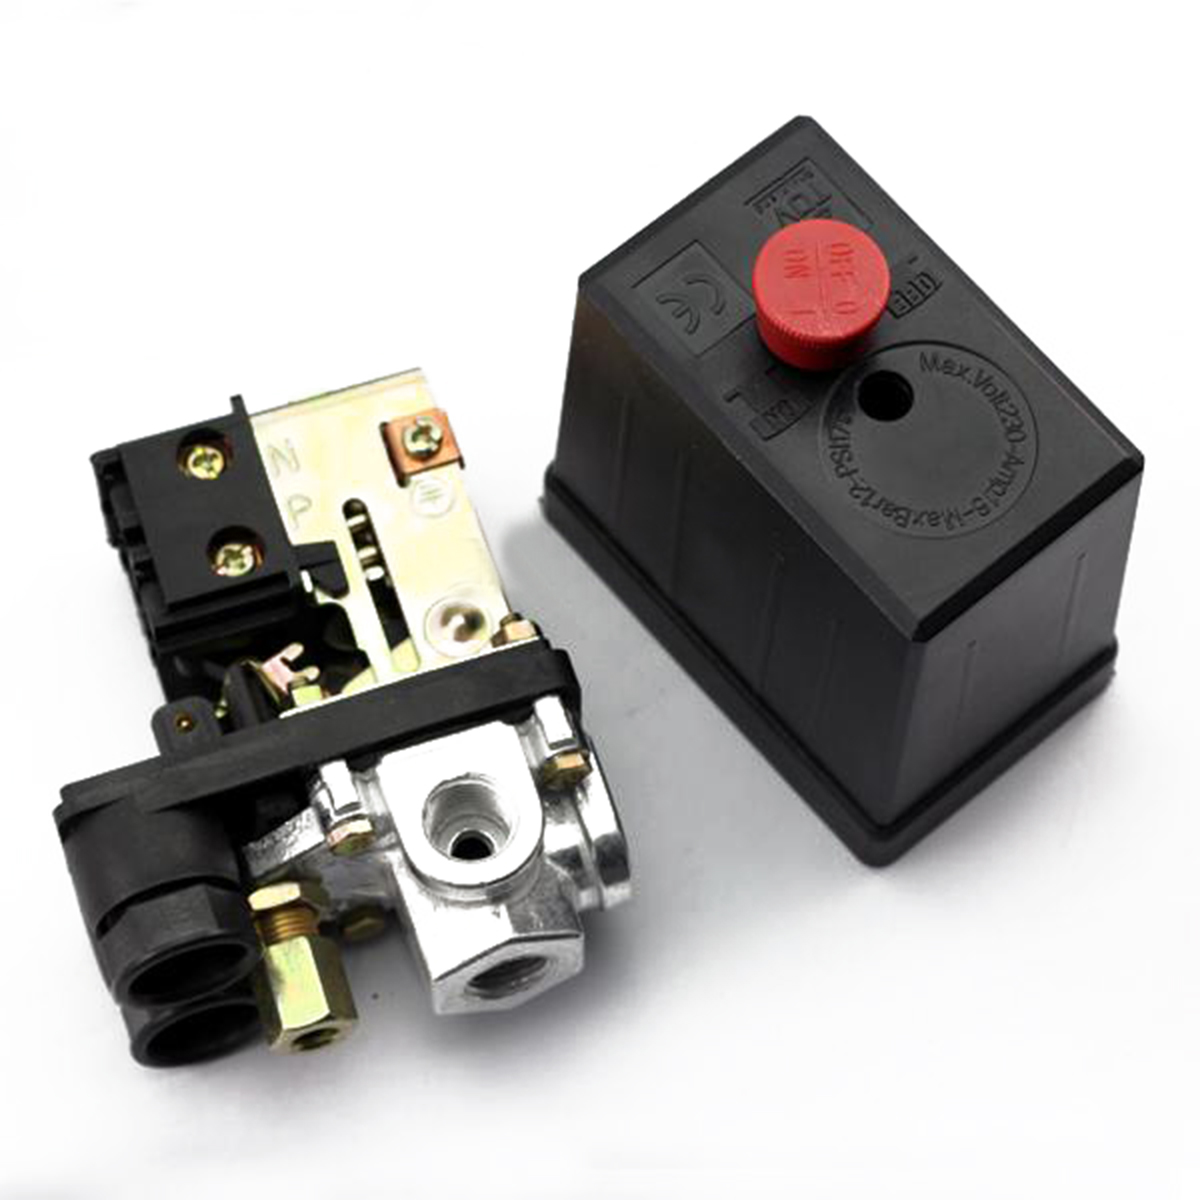 Black Heavy Duty Air Compressor Pressure Switch 240V 16A 90PSI -120PSI Mayitr Practical Auto Switch Control Valve 82*82*52mm 120psi air compressor pressure valve switch manifold relief regulator gauges